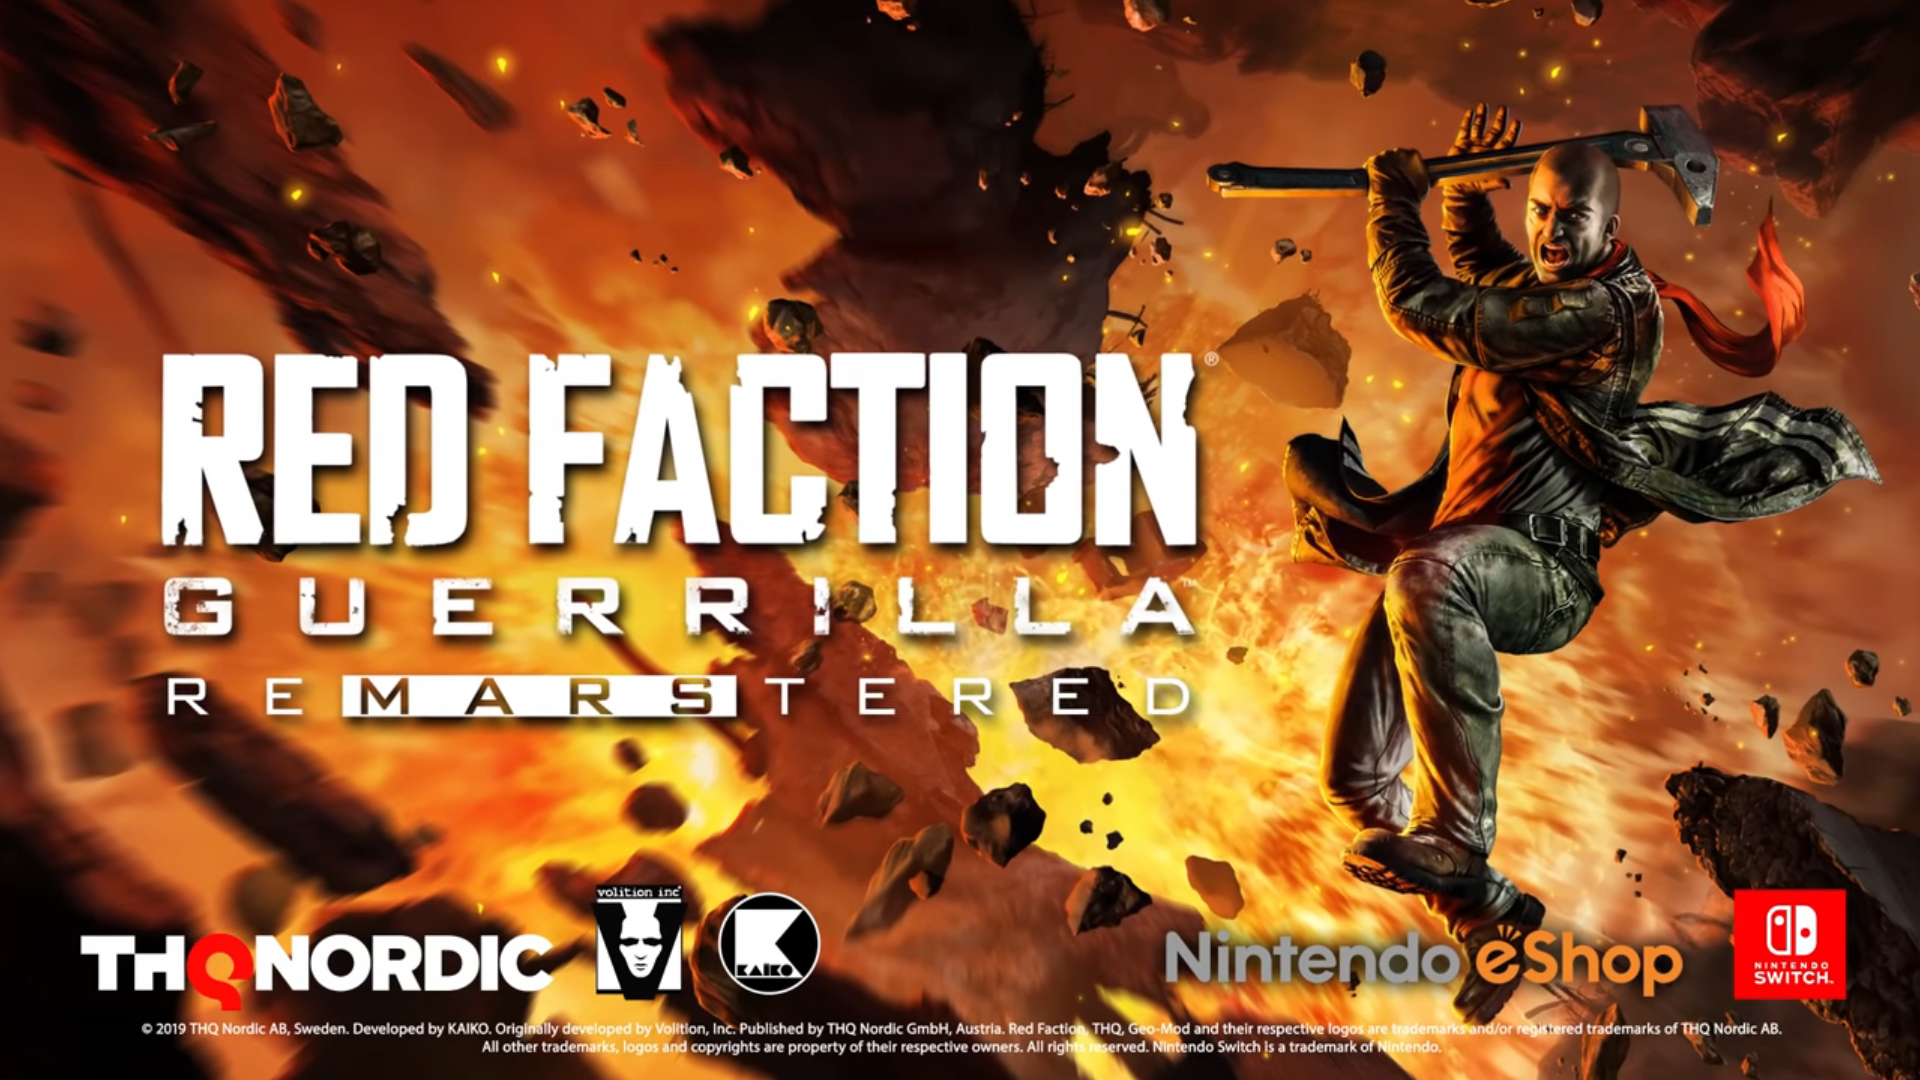 Red Faction: Guerrilla's remastered edition is coming to Switch